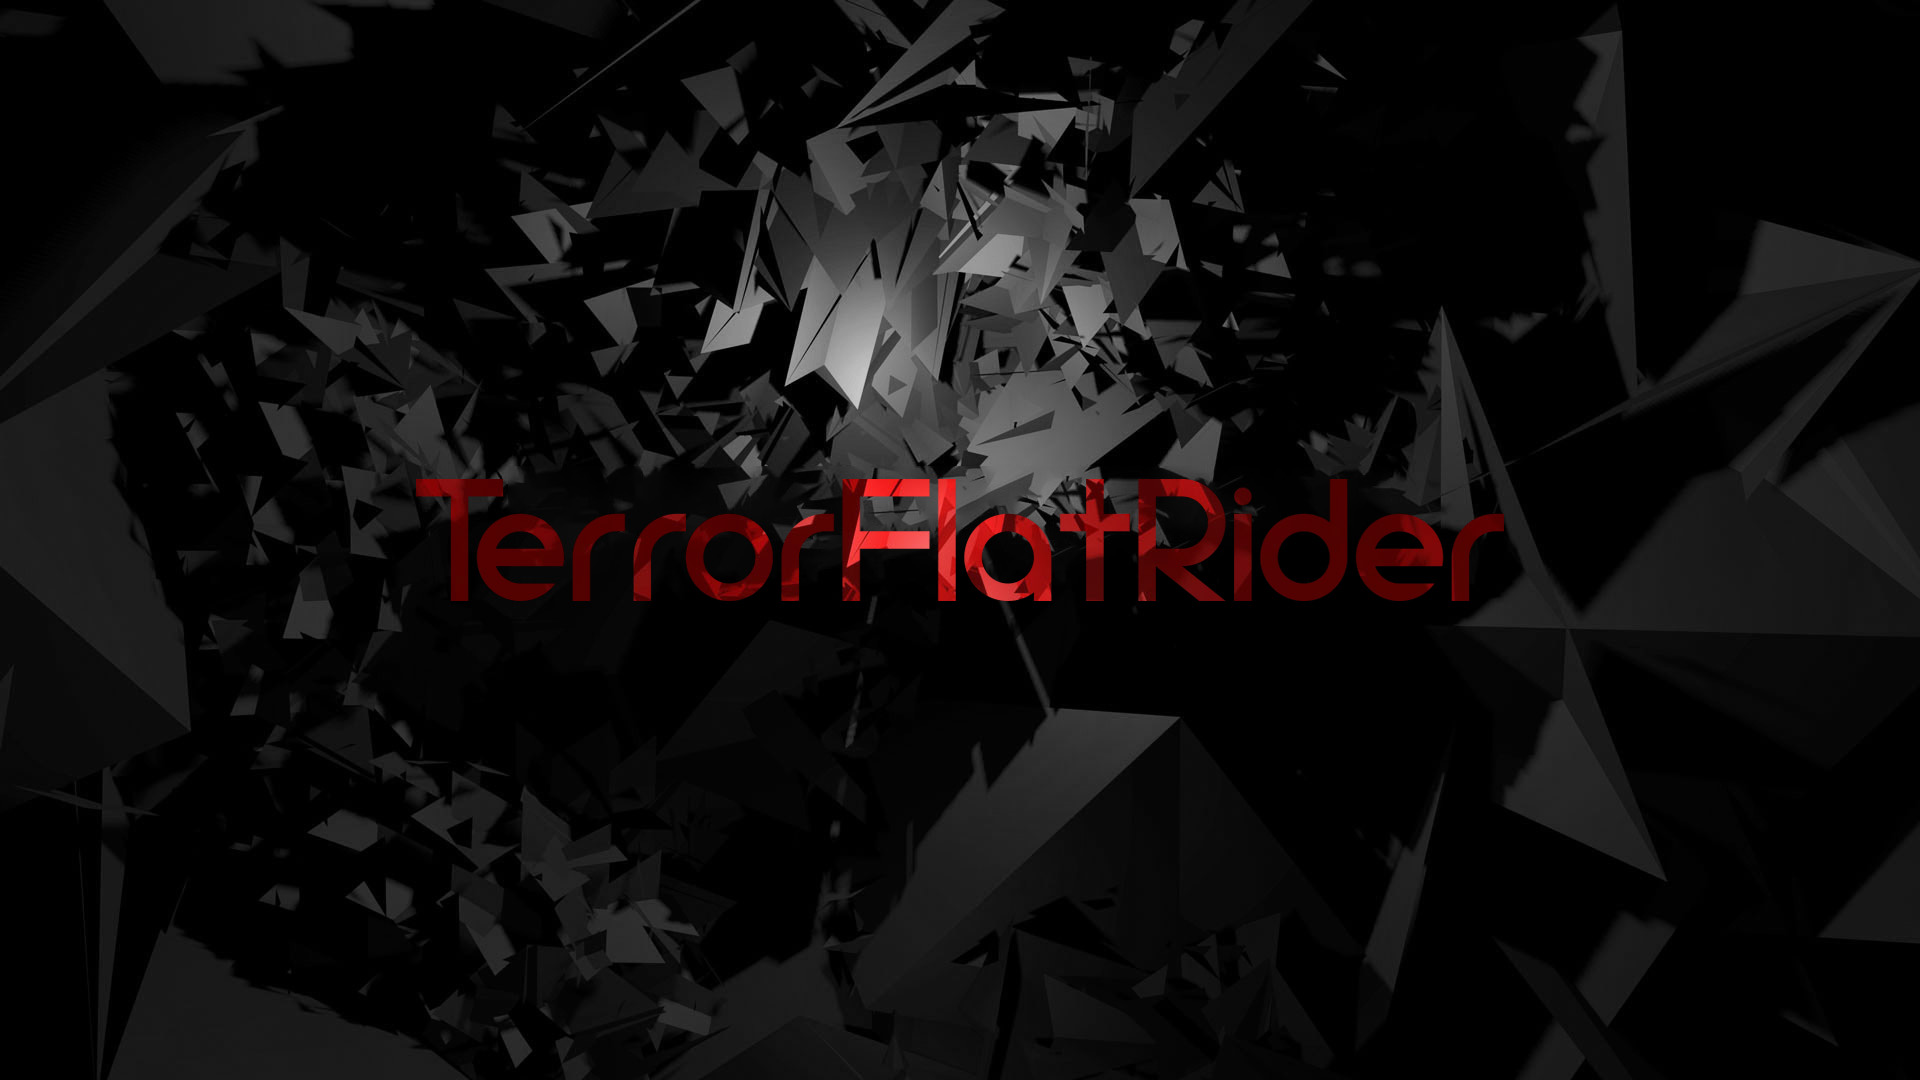 TerrorFlatRider Polygon Glitch